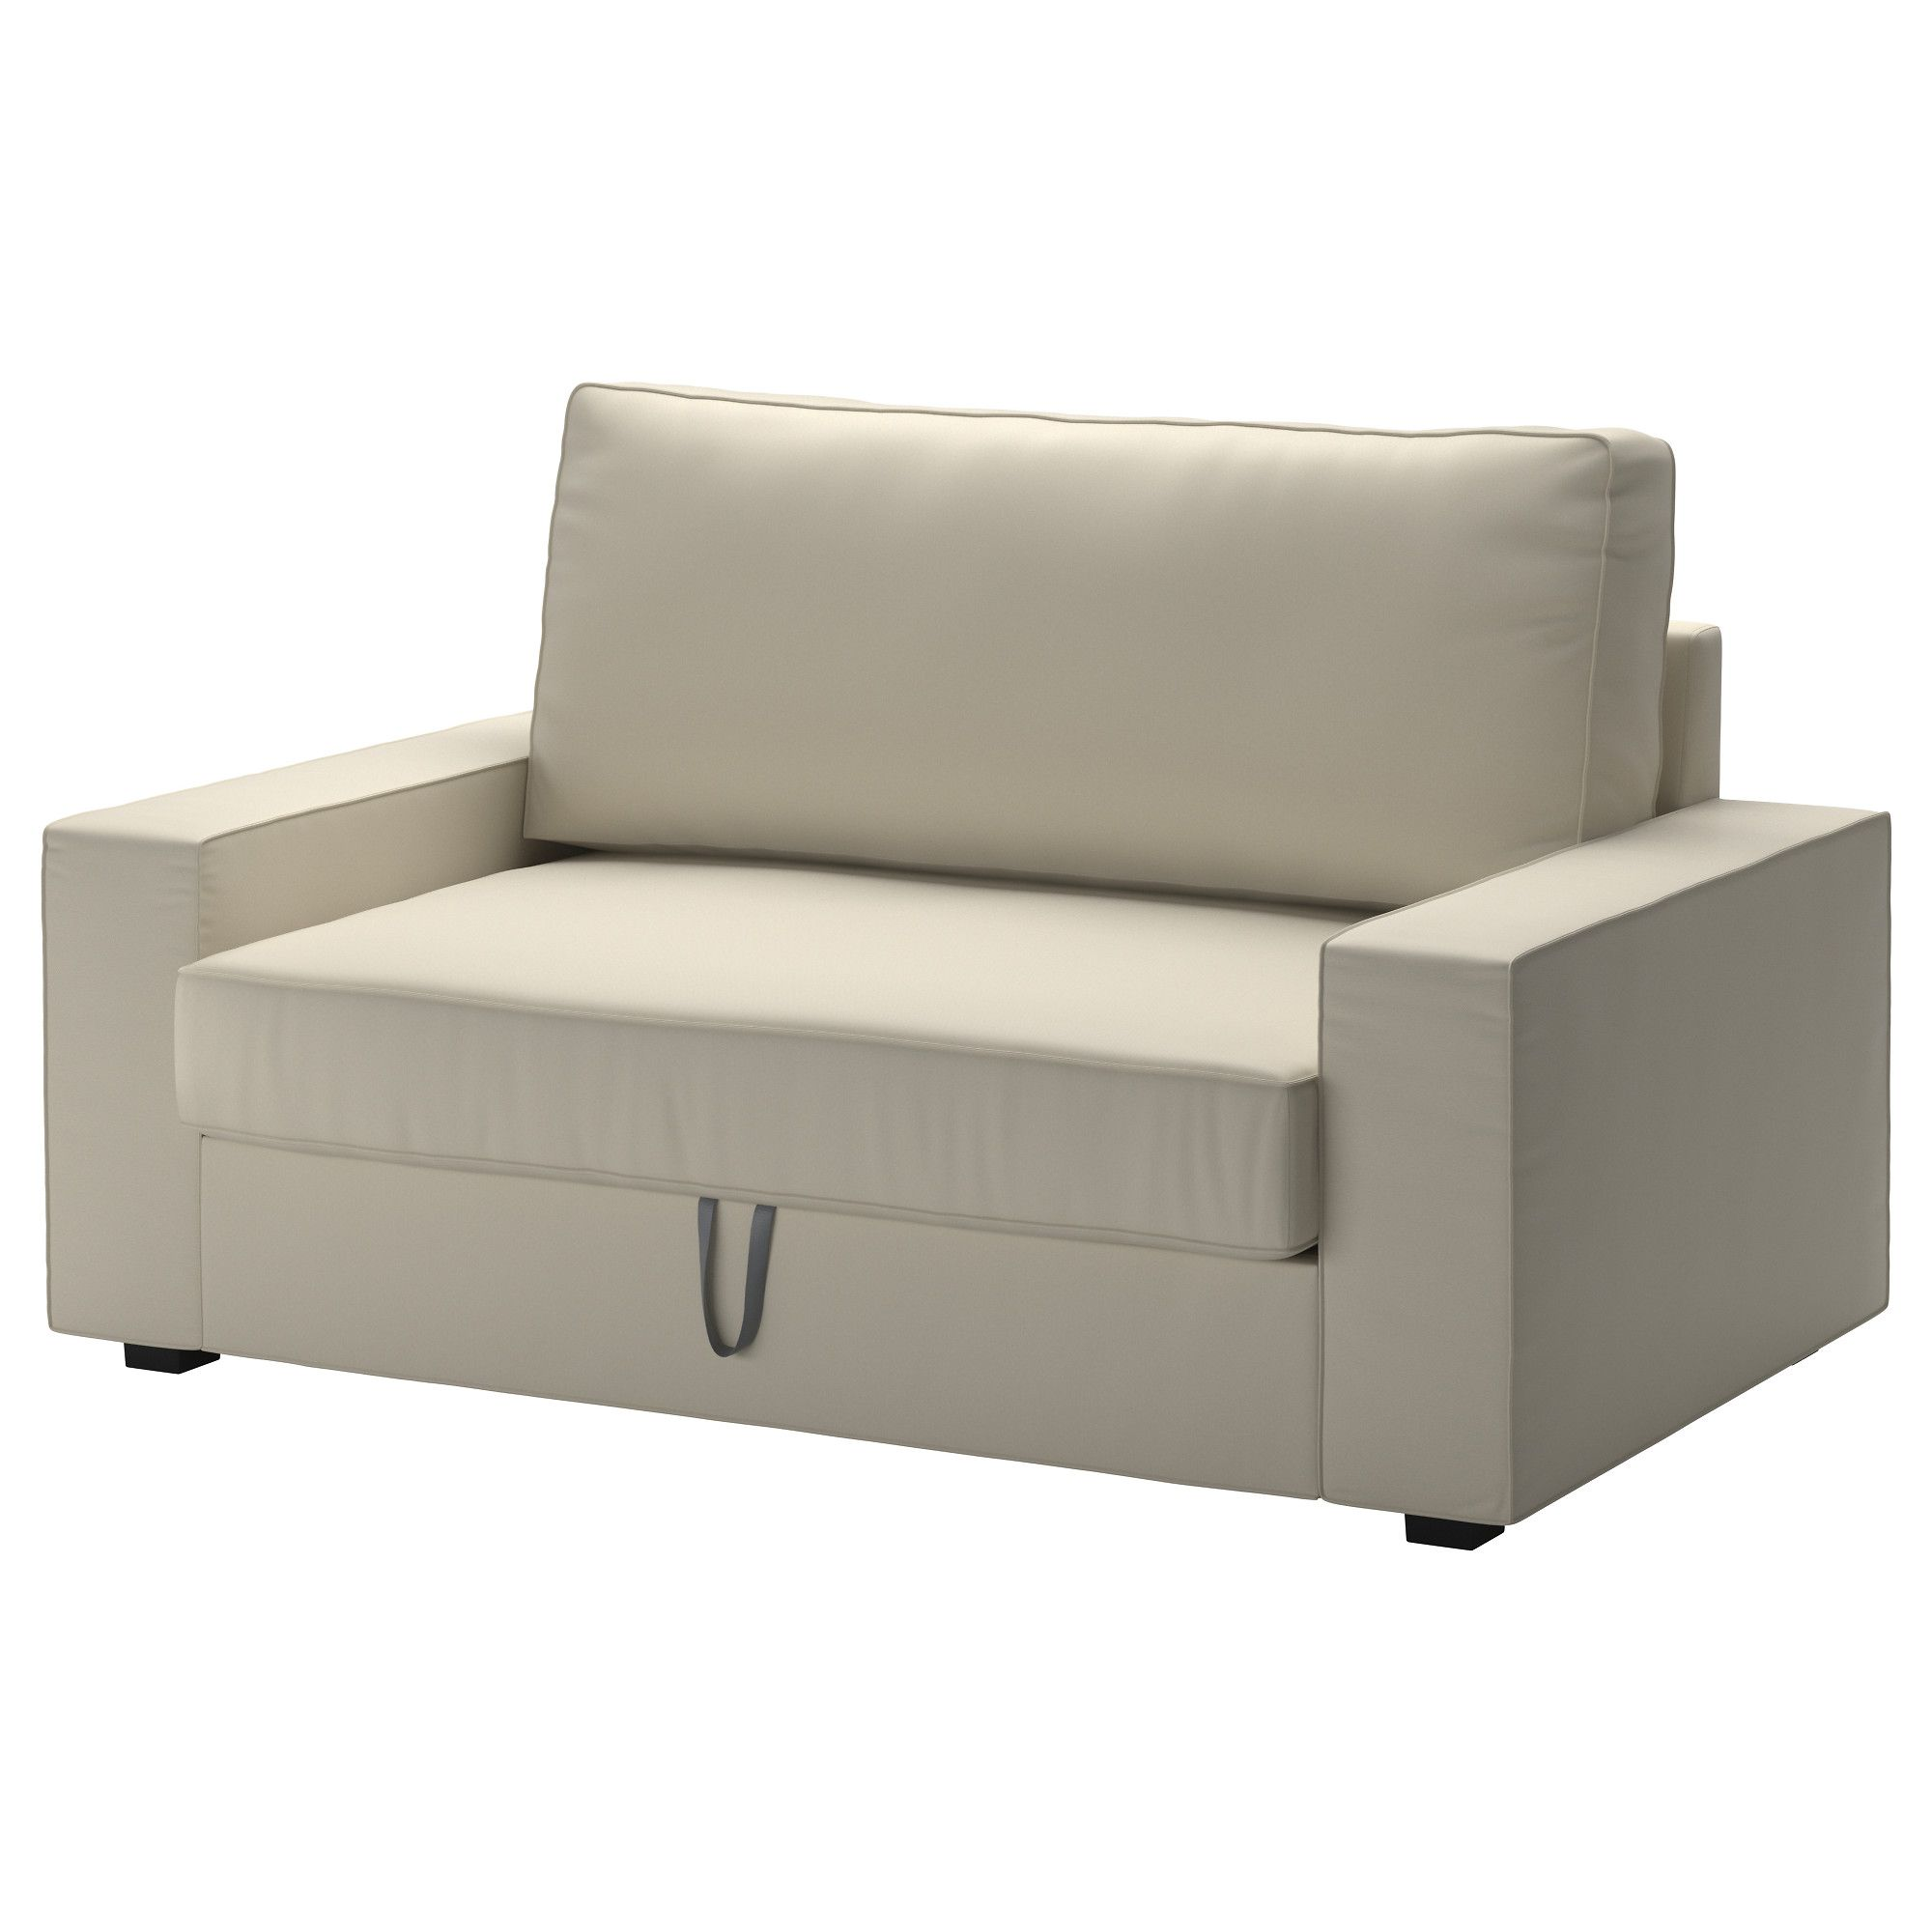 Ireland Shop For Furniture Home Accessories